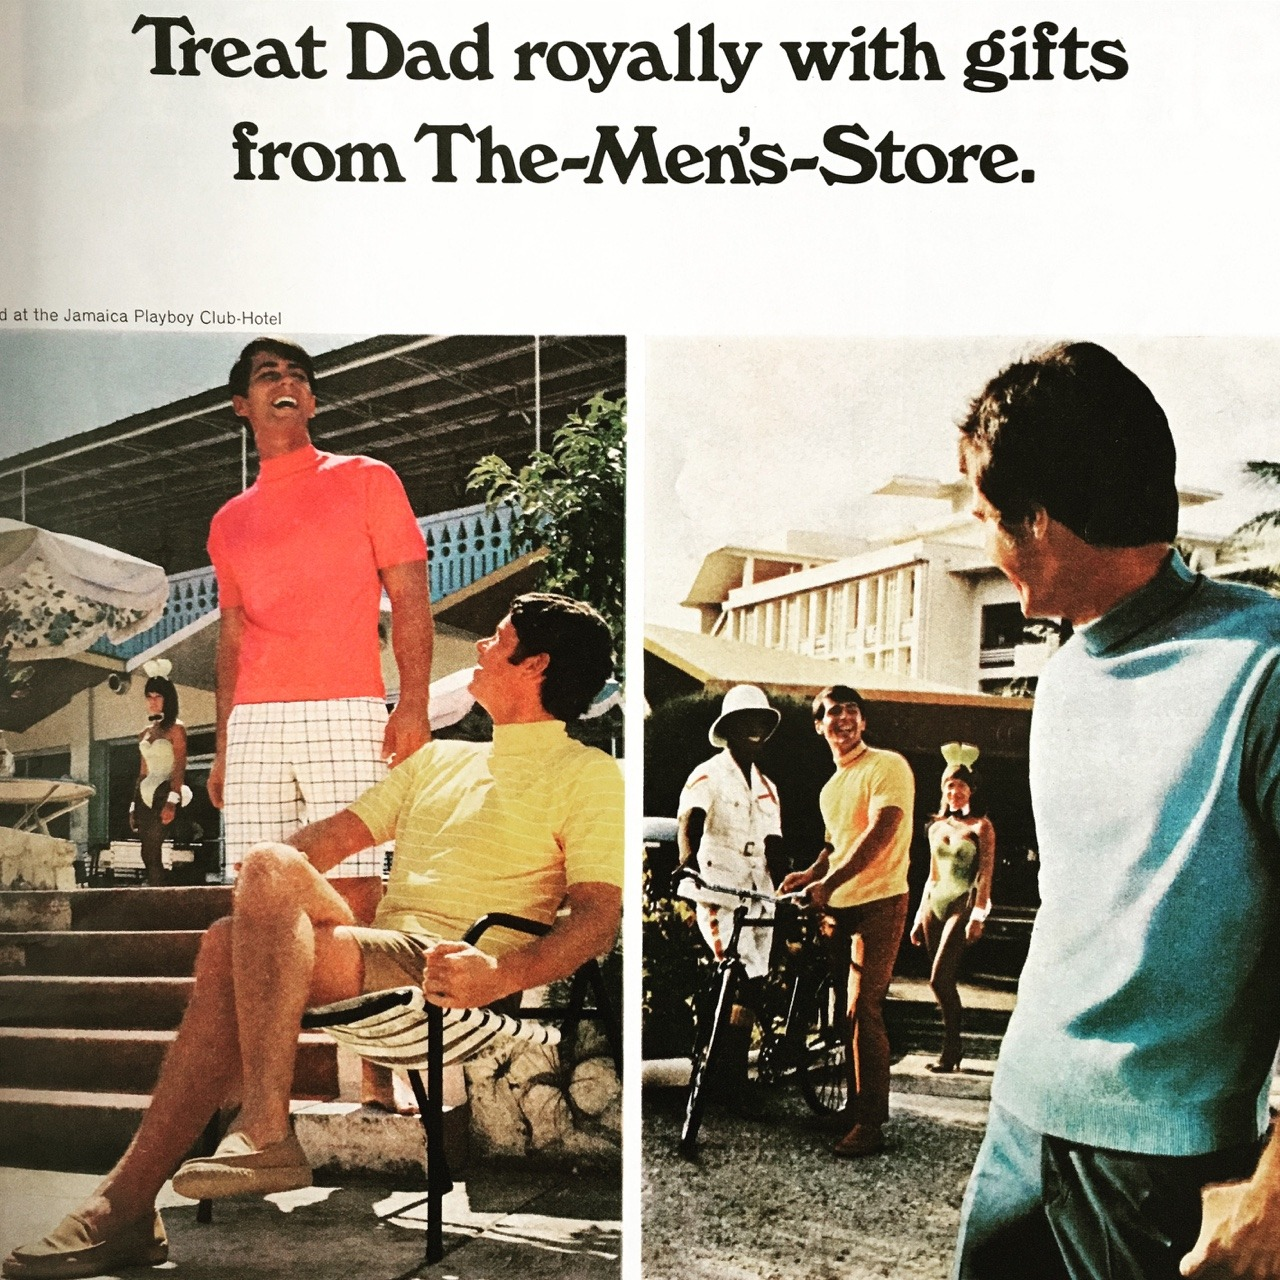 Treat Dad royally with gifts from The Men's Store. Sears.     McCall's Magazine. June 1969.